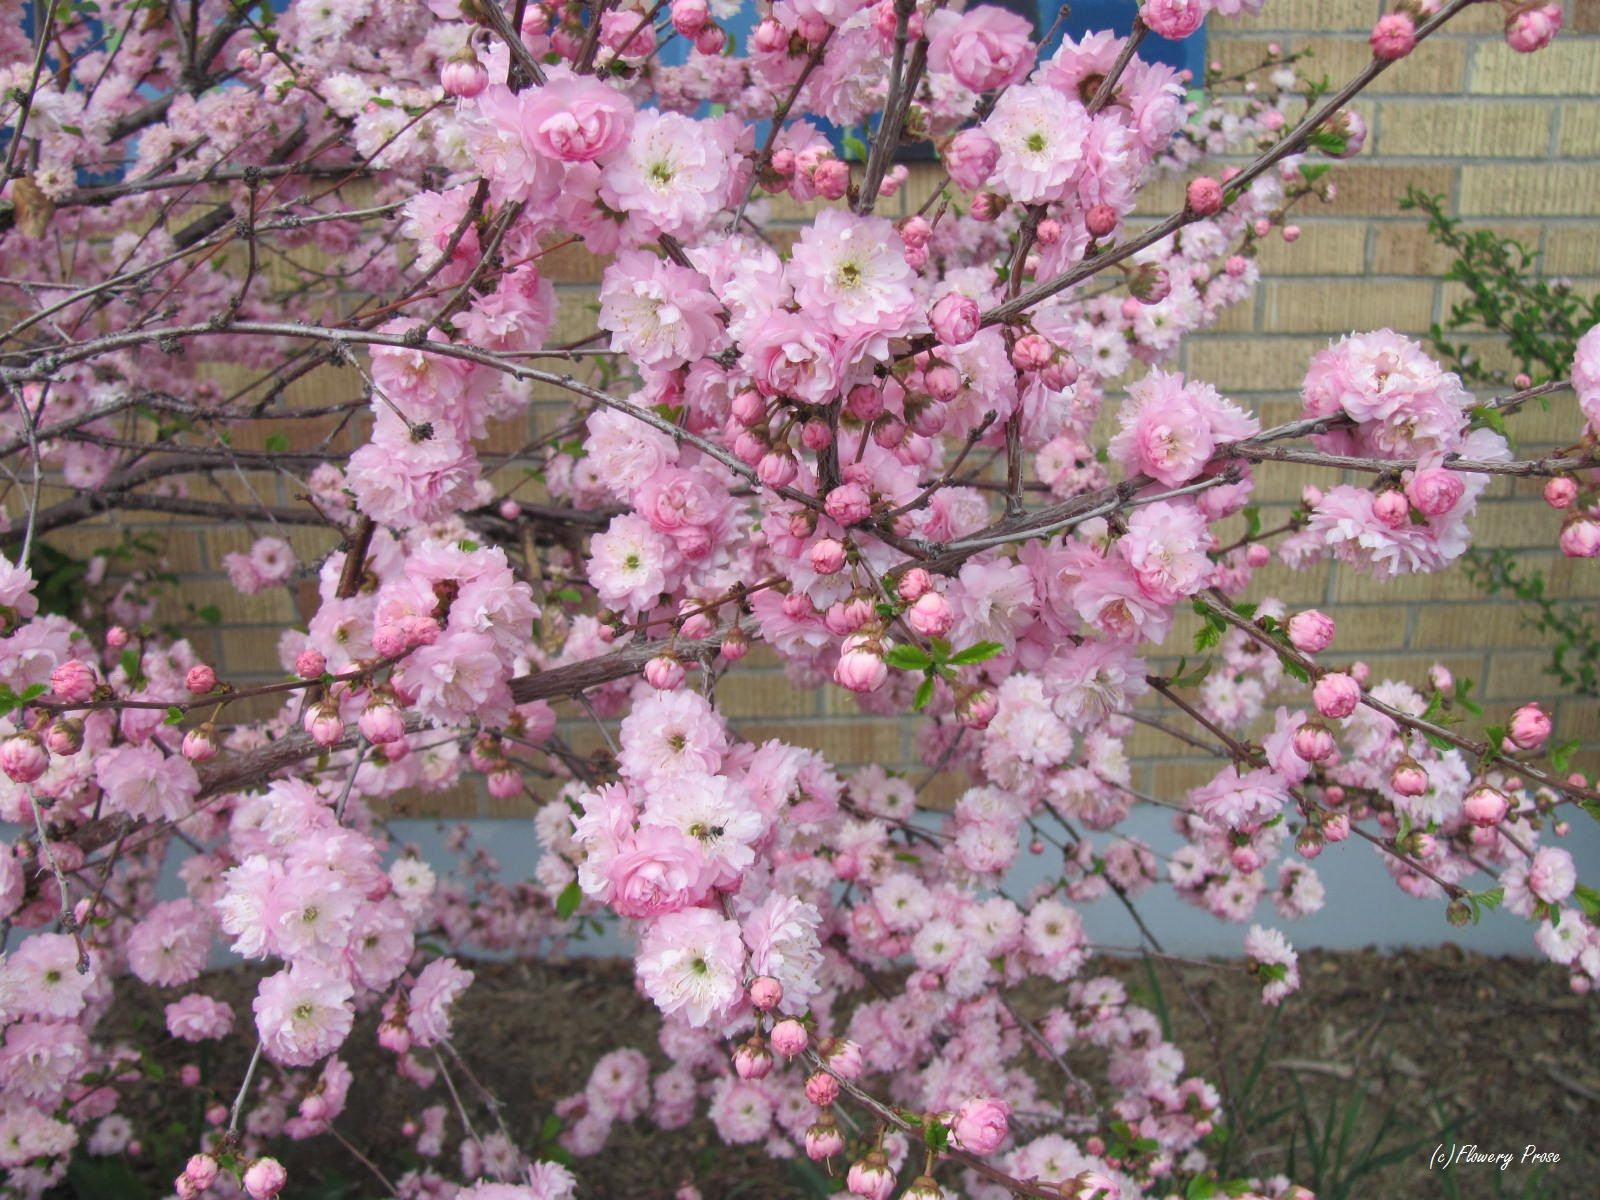 Double Flowering Plums Our Northern Cherry Blossoms In 2020 Ornamental Cherry Growing Cherry Trees Trees To Plant